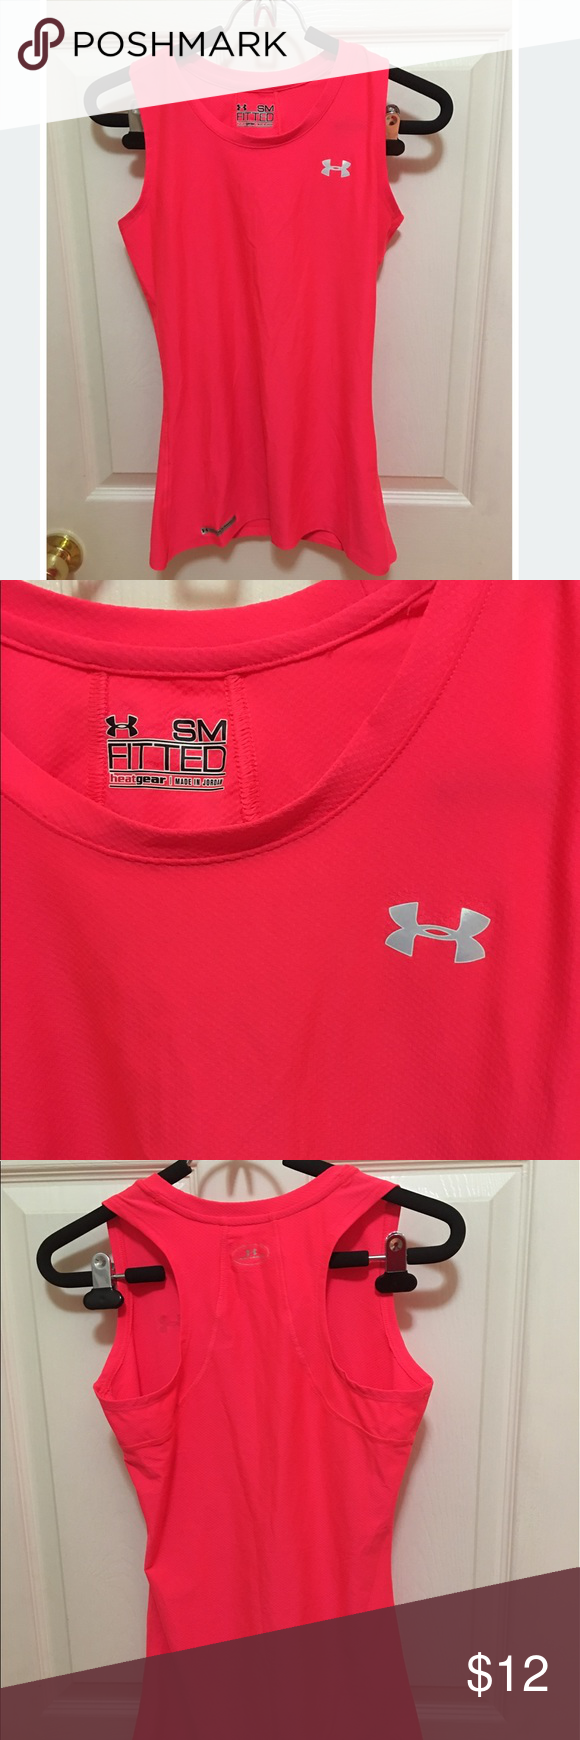 Women's under armor fitted dry fit workout tank Women's under armor fitted dry fit workout tank. Heat gear. Neon pink. Great workout tank, wicks sweat. Used great condition. Size small. Under Armour Tops Tank Tops